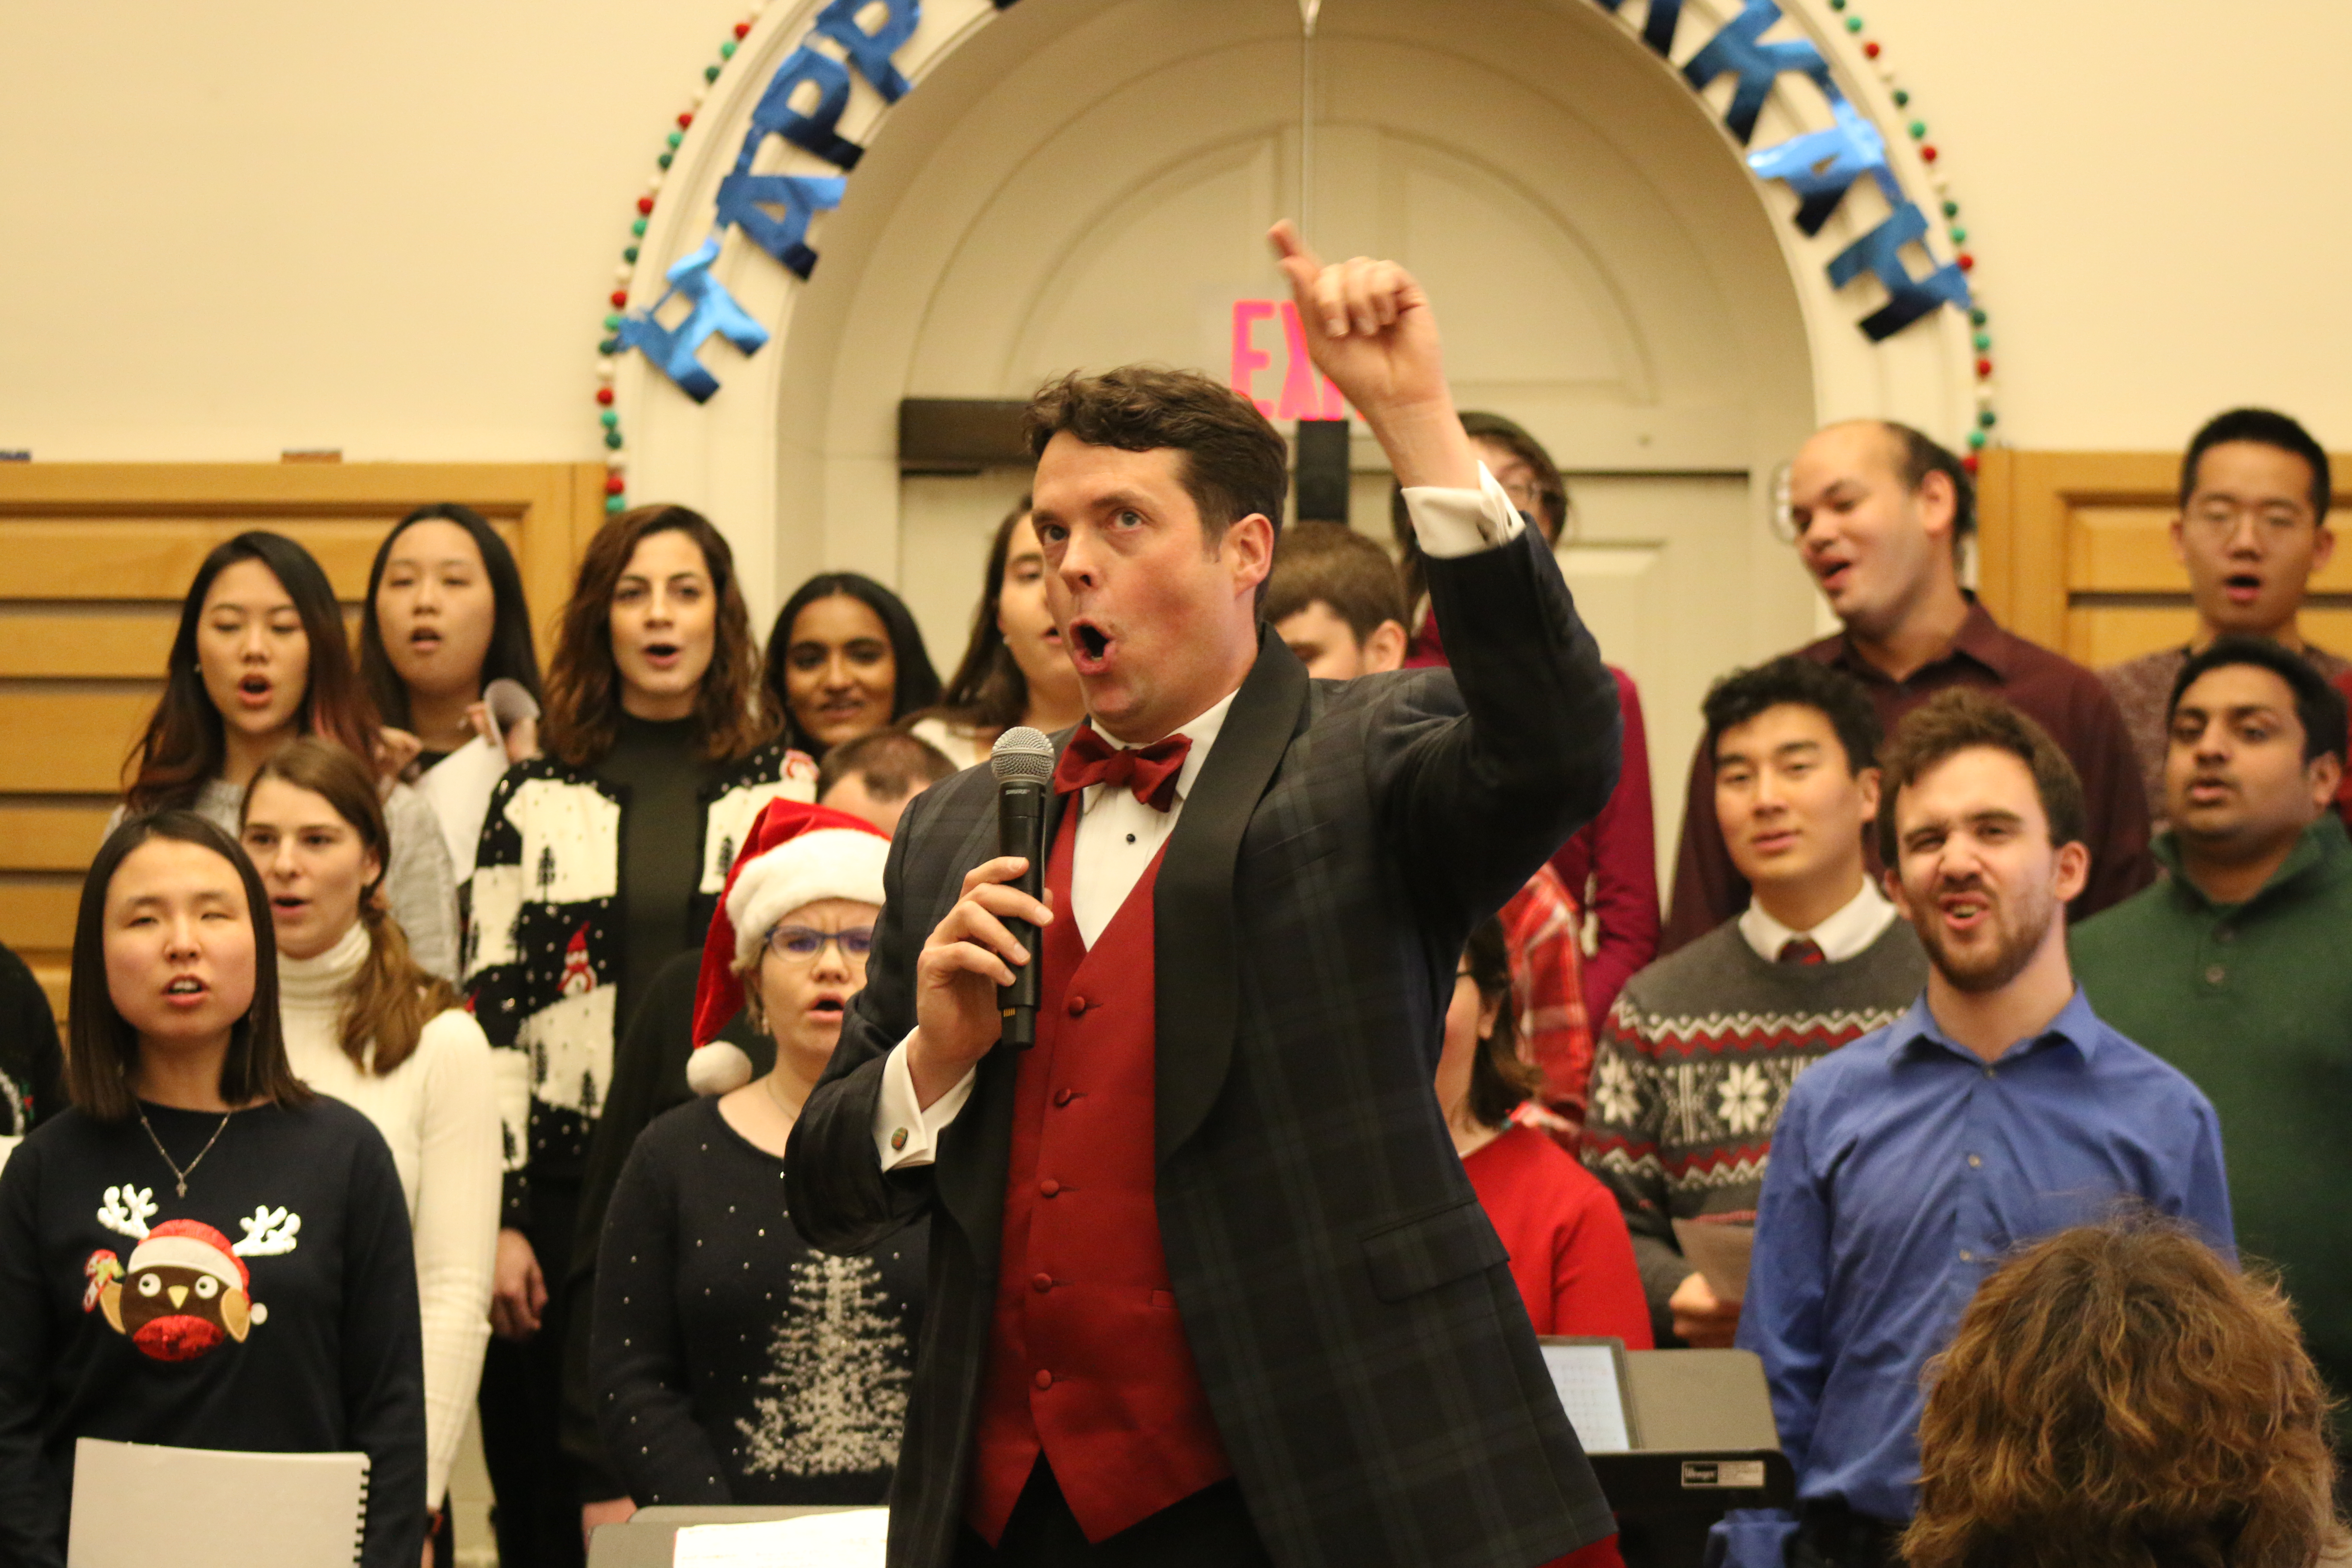 A man (the choir director) sings with hand raised at the holiday concert